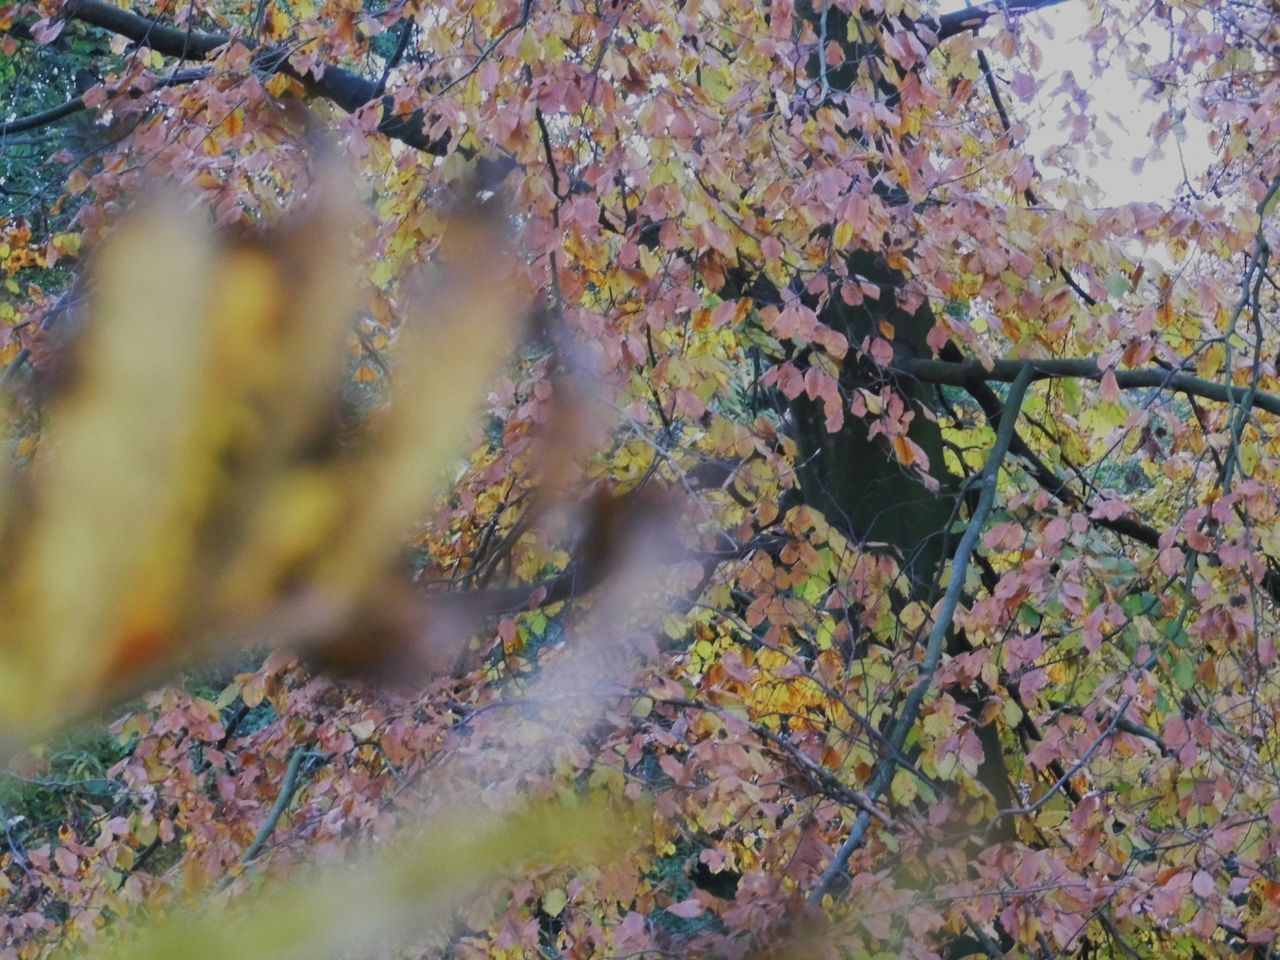 leaf, autumn, nature, growth, no people, day, outdoors, beauty in nature, plant, lichen, branch, close-up, tree, fragility